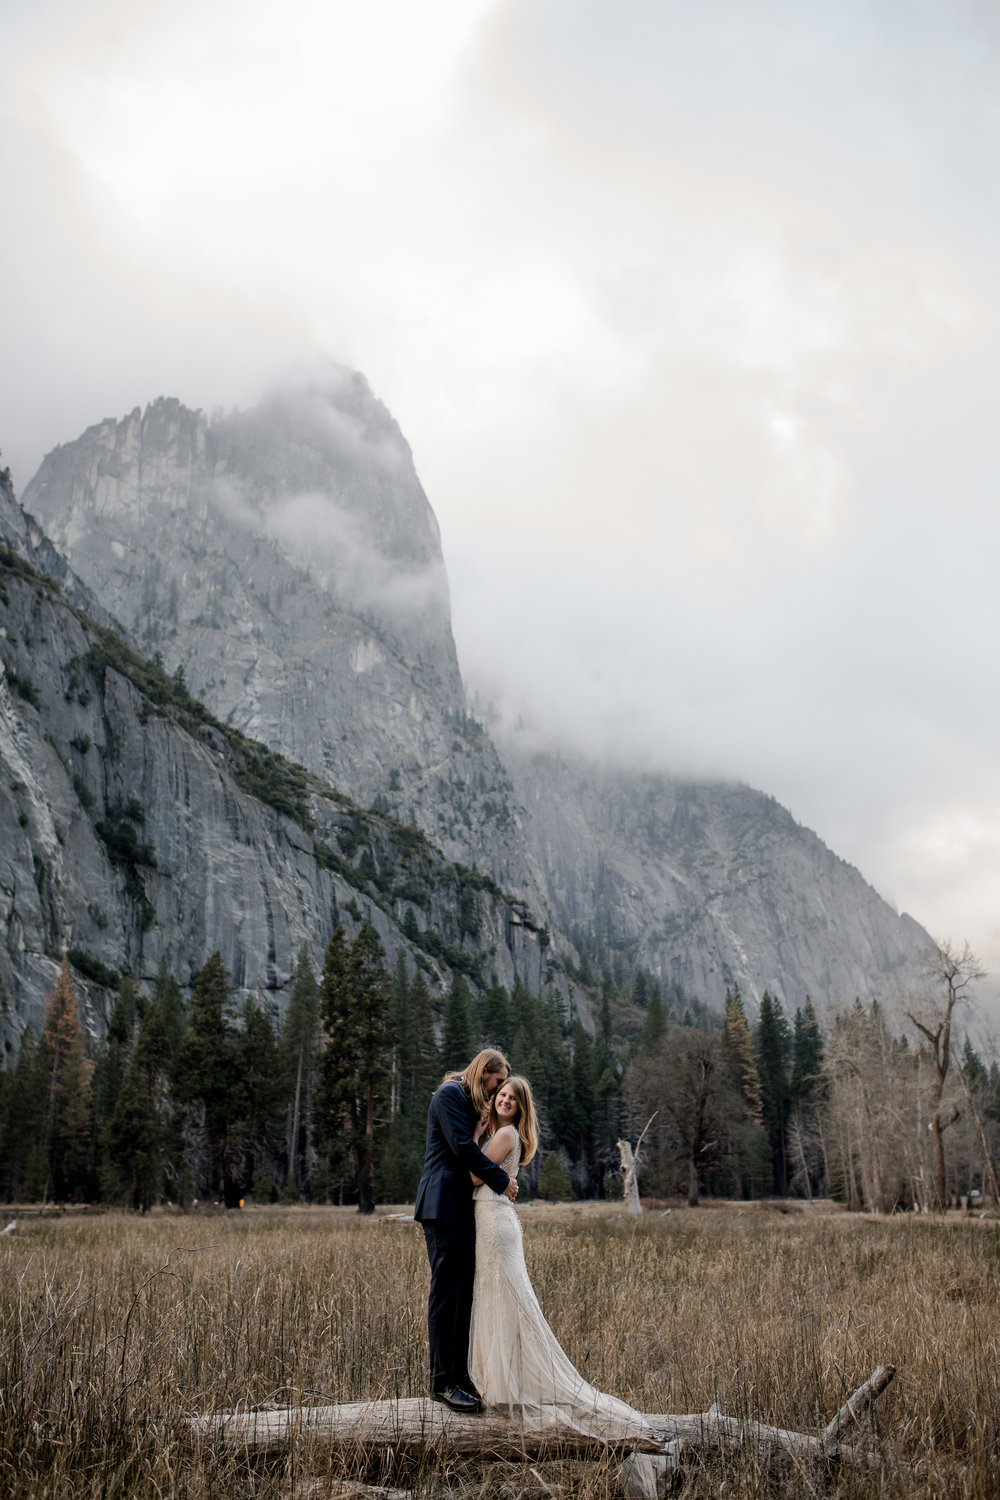 nicole-daacke-photography-yousemite-national-park-elopement-photographer-winter-cloud-moody-elope-inspiration-yosemite-valley-tunnel-view-winter-cloud-fog-weather-wedding-photos-79.jpg